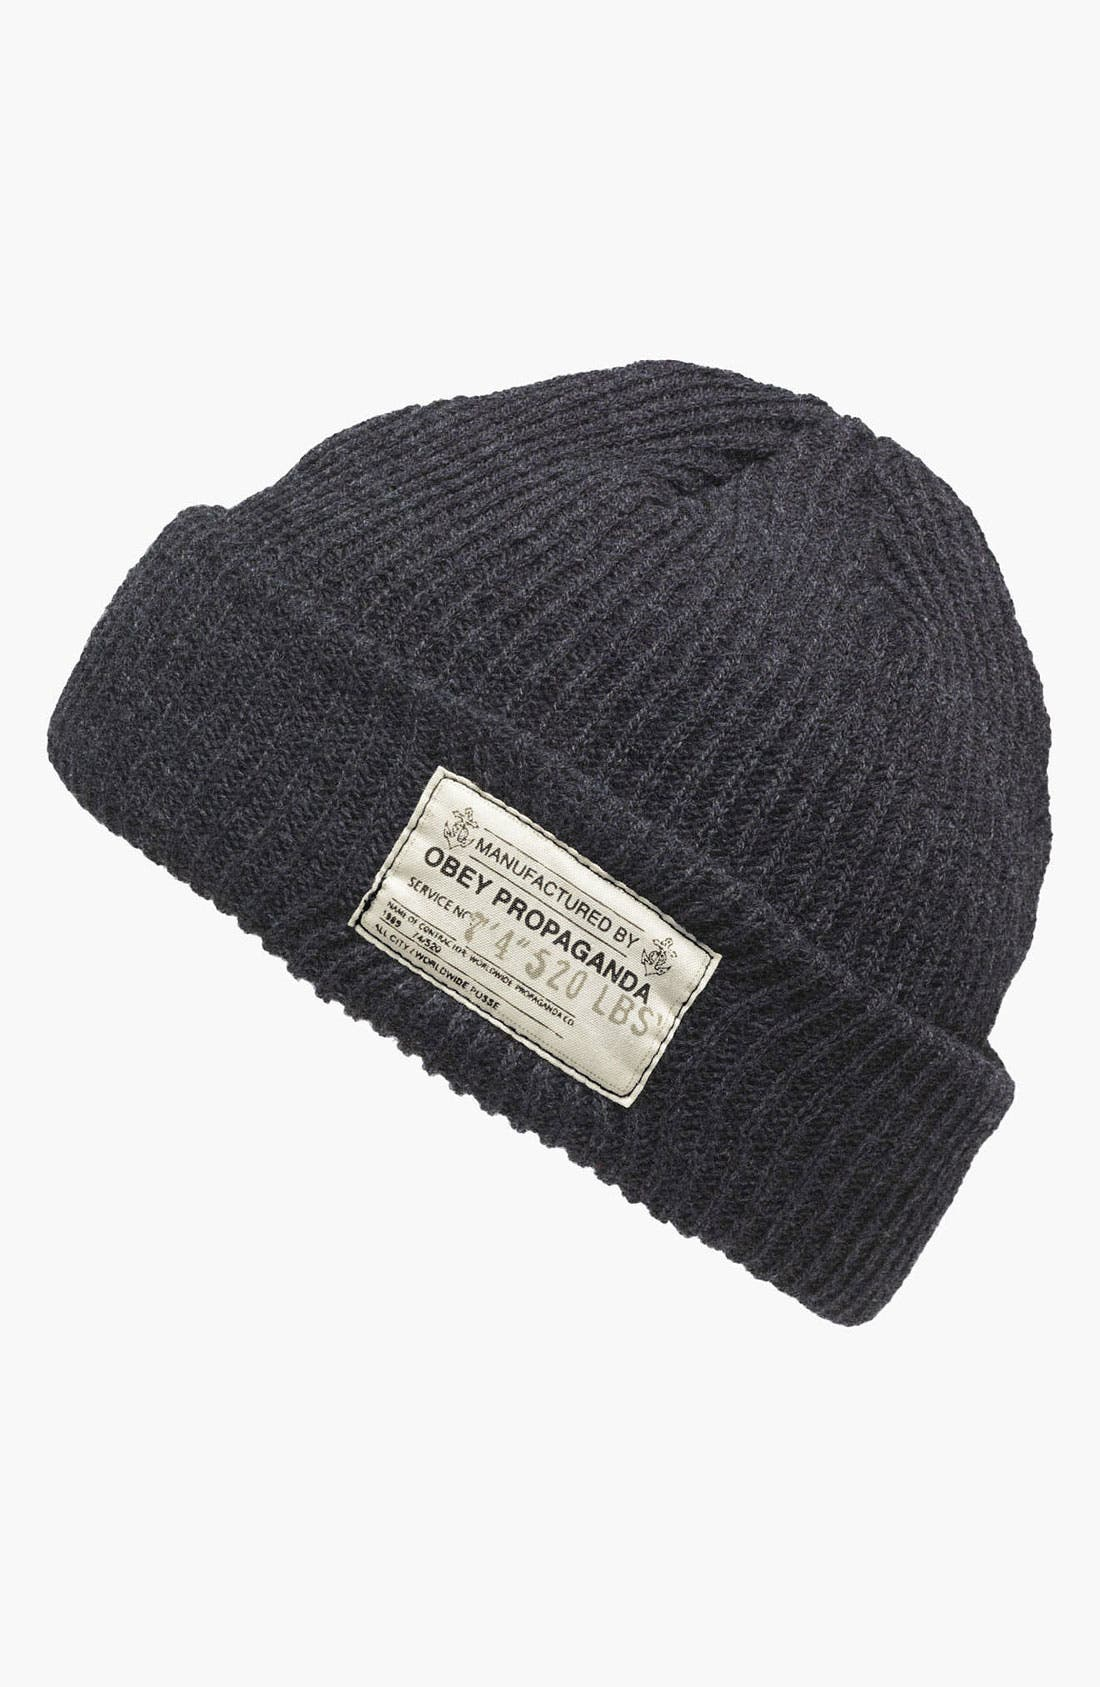 Alternate Image 1 Selected - Obey 'Draft' Knit Cap